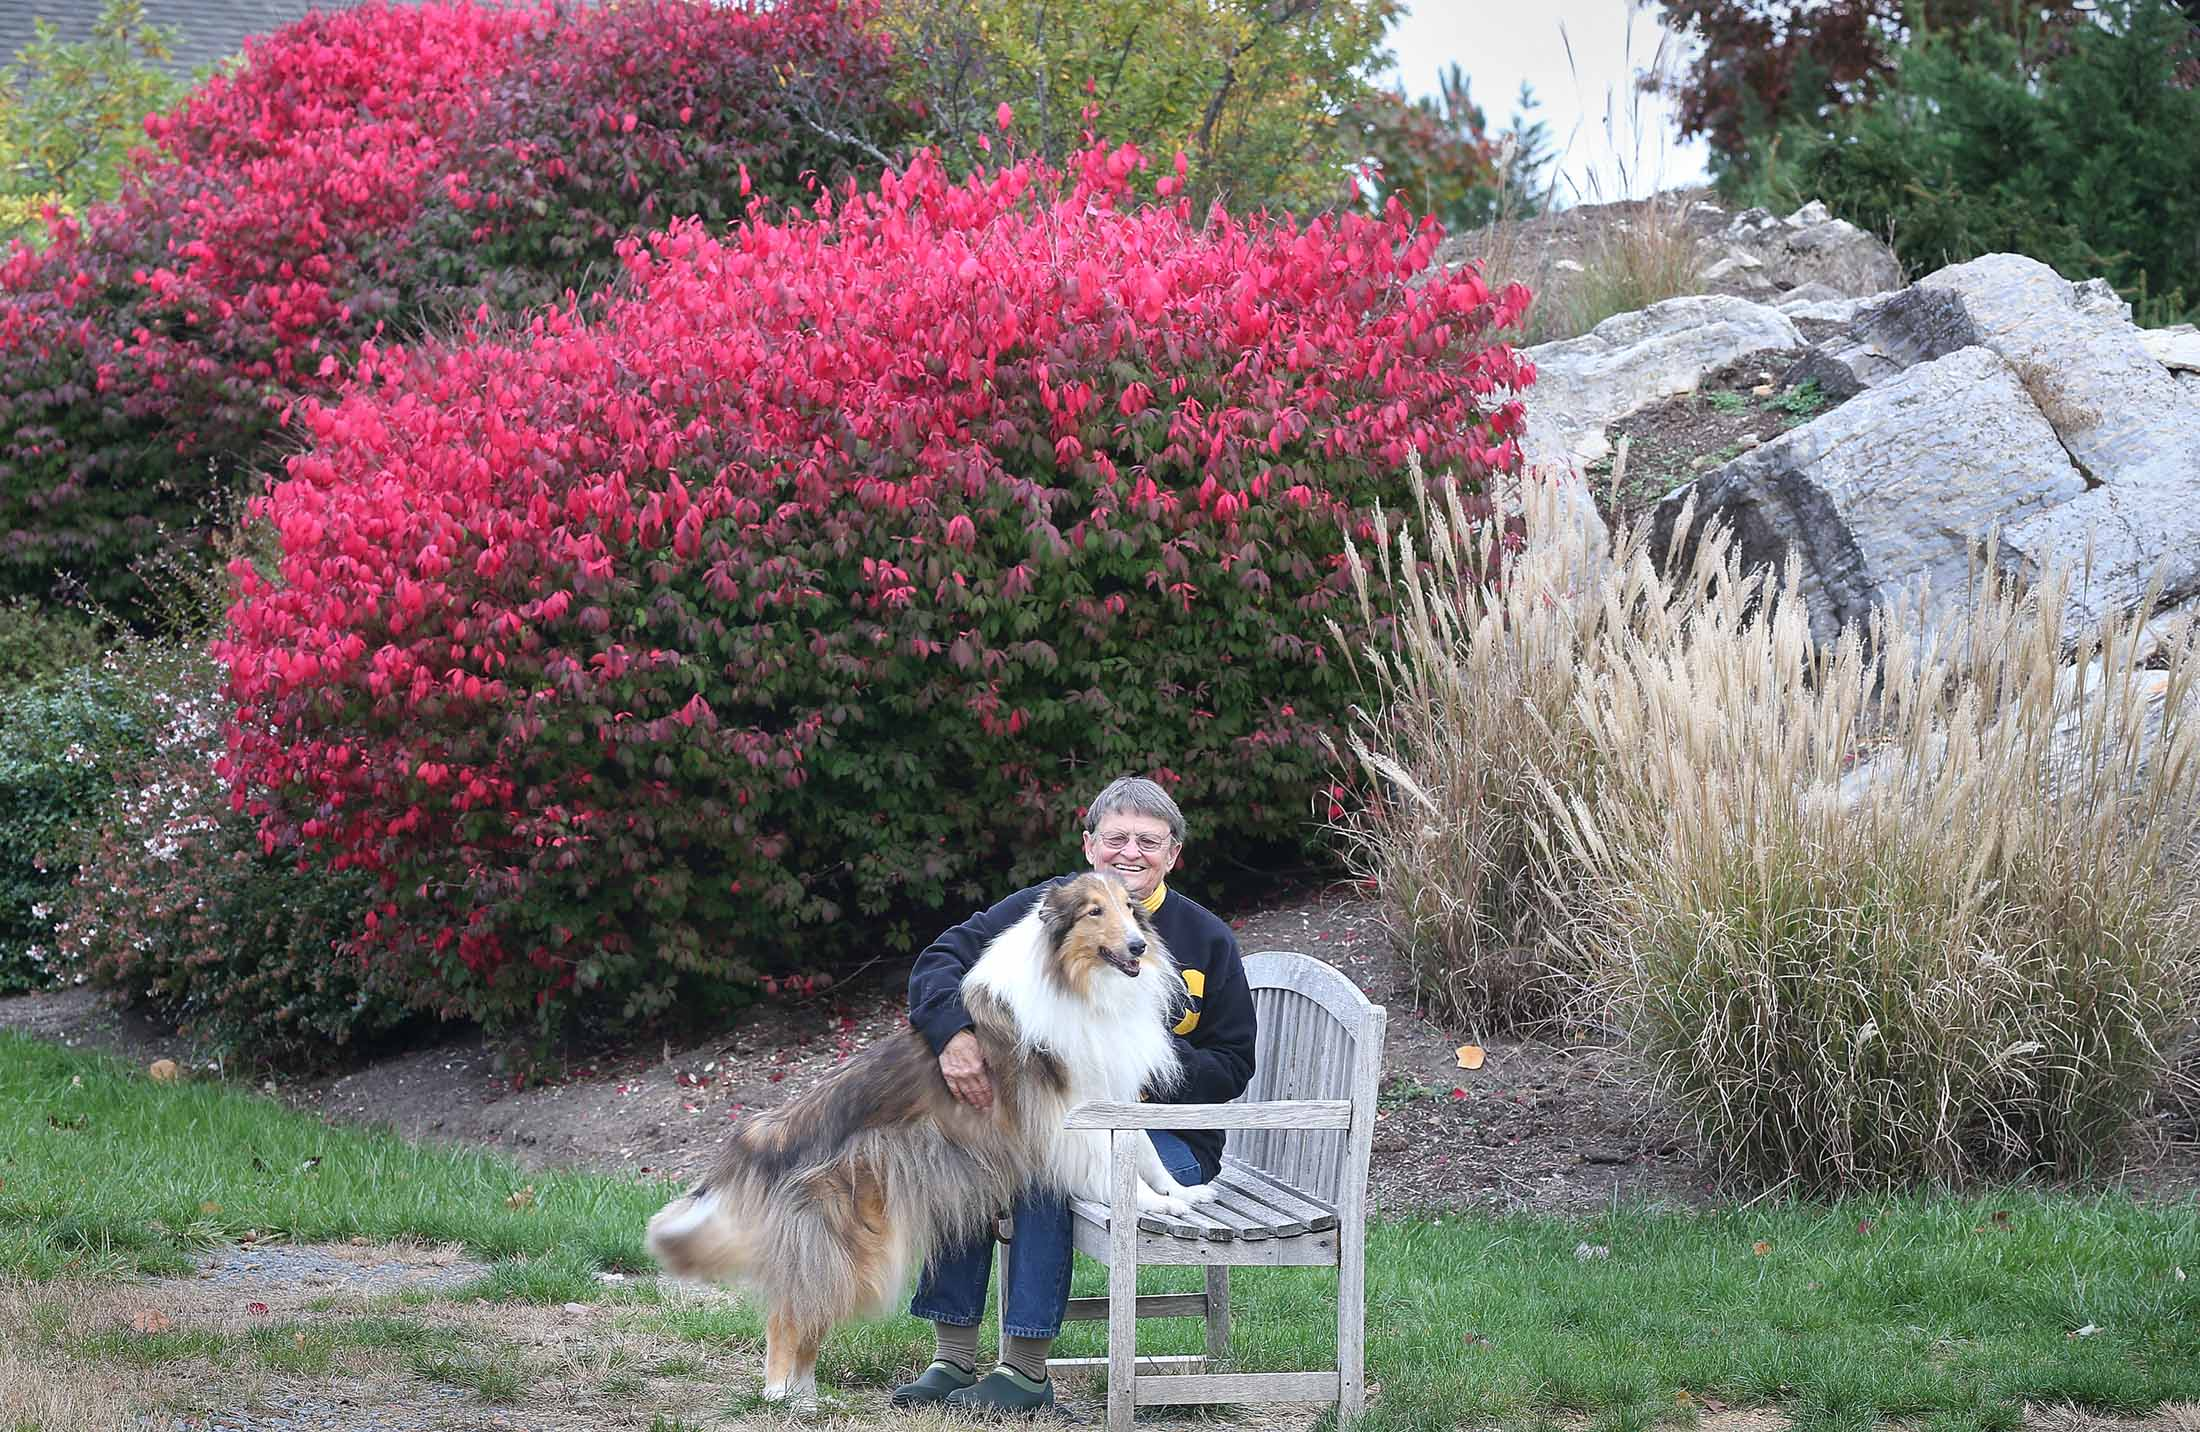 Health service woman and dog in garden